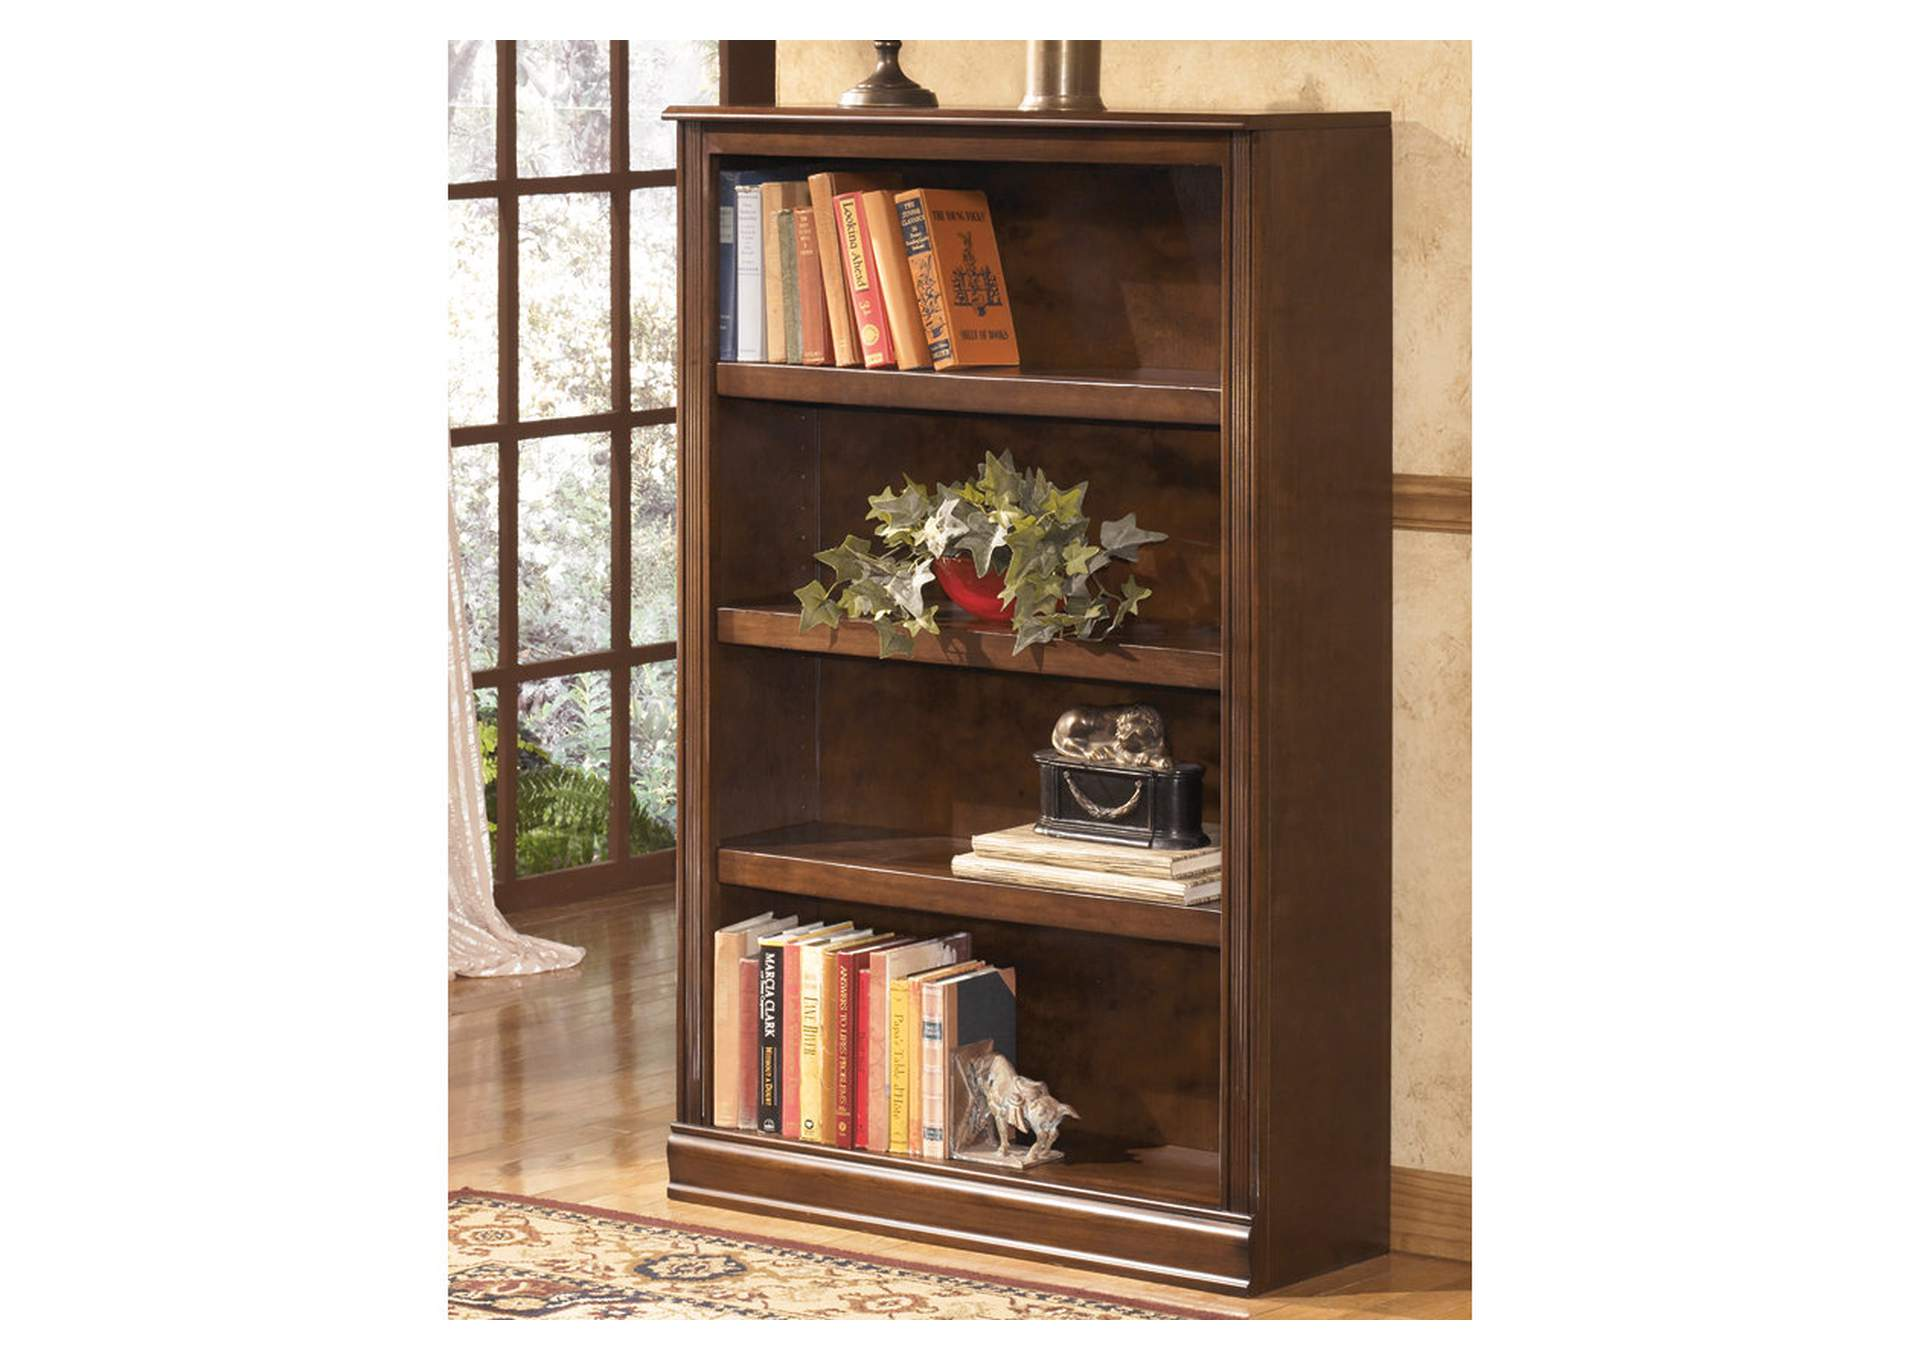 Hamlyn Medium Bookcase,Signature Design By Ashley